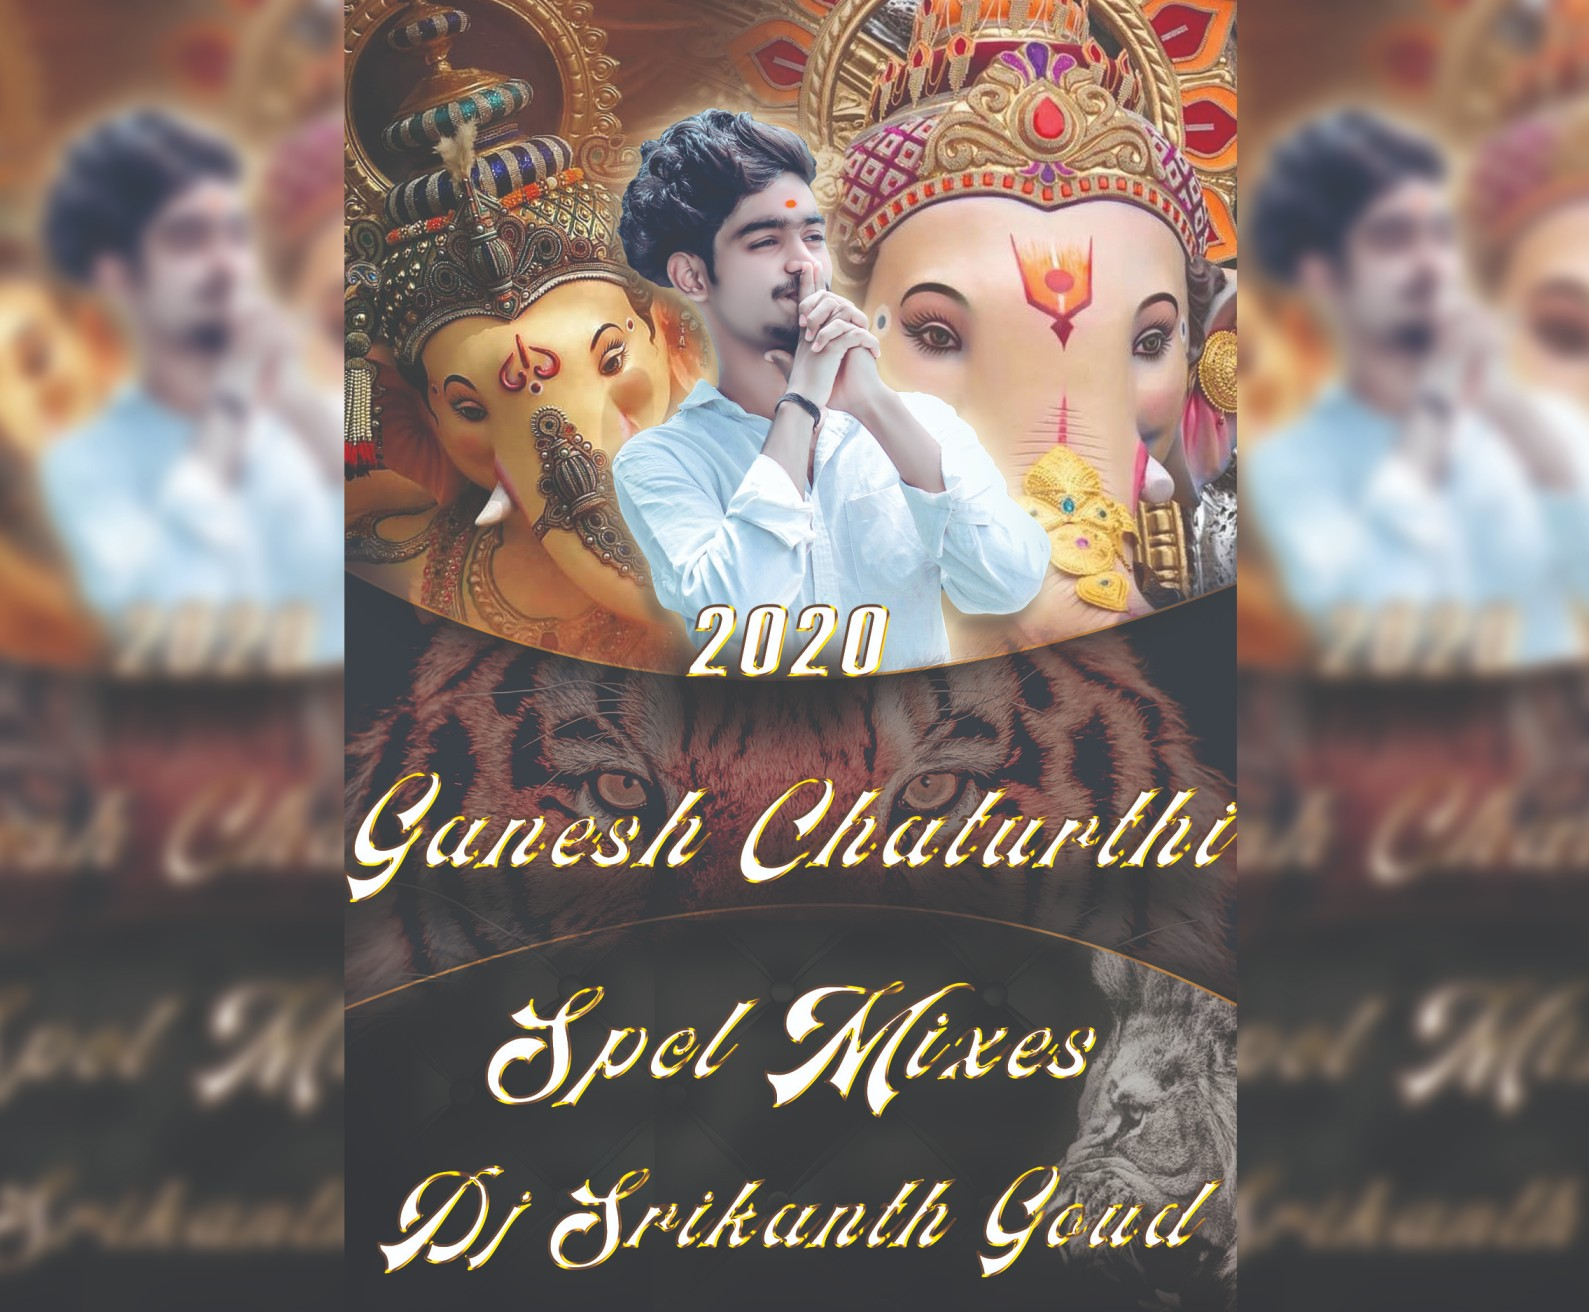 Ganesh Dj Songs Download, Ganesh Dj Songs Telugu, Ganesh Dj Songs 2019, Ganesh Dj Songs 2018, Ganesh Dj Songs Telugu 2018, Ganesh Dj Songs Download Telugu, Ganesh Dj Songs Mp3, Ganesh Dj Songs Remix, Ganesh Dj Songs New, Ganesh Dj Songs Video, Ganesh Dj Songs Audio, Ganesh Dj Songs Audio Download, Ganesh Dj Songs Audio Telugu, Ganesh Dj Songs Aarti, Ganesh Dj Songs And Remix, Ganesh Dj Songs And Chatal Band, Ganesh Dj Audio Songs Telugu Download, Ganesh Dj All Songs Download, Dj Ganesh Aarti Song Download, Ganesh Chaturthi Dj Song All, Ganesh A Dj Songs, Download The Ganesh Dj Songs, Ganesh Dj Songs Bass, Ganesh Dj Songs Bhojpuri, Ganesh Dj Songs Band, Ganesh Dj Songs Banjara, Ganesh Dj Songs Bajrang, Ganesh Dj Songs Bajarangi, Ganesh Dj Songs Bajrangbali